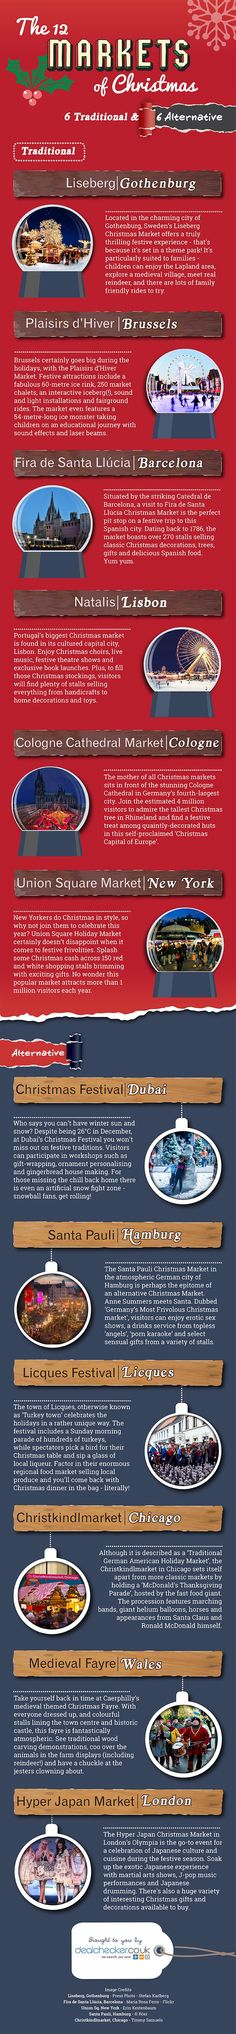 The 12 Markets of Christmas #infographic #Christmas #Travel #infografía